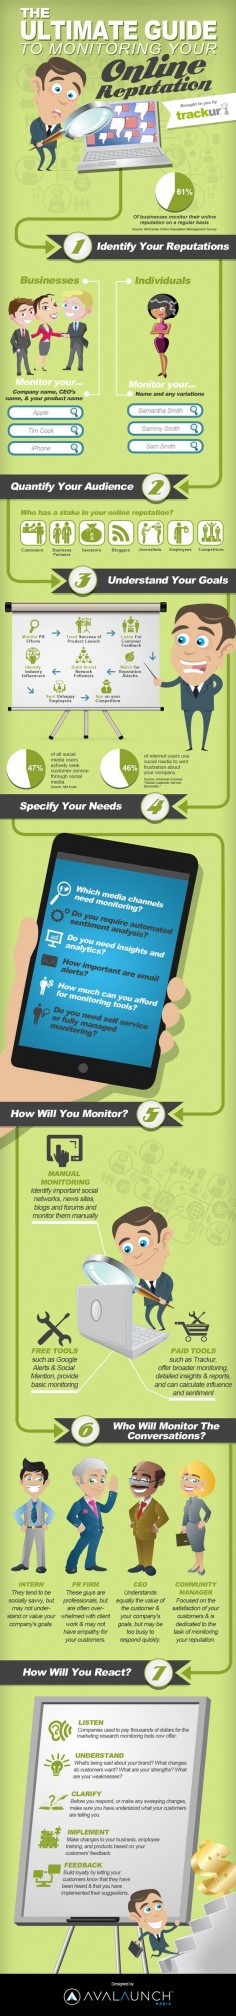 How to Monitor Your Online Reputation #Infographic